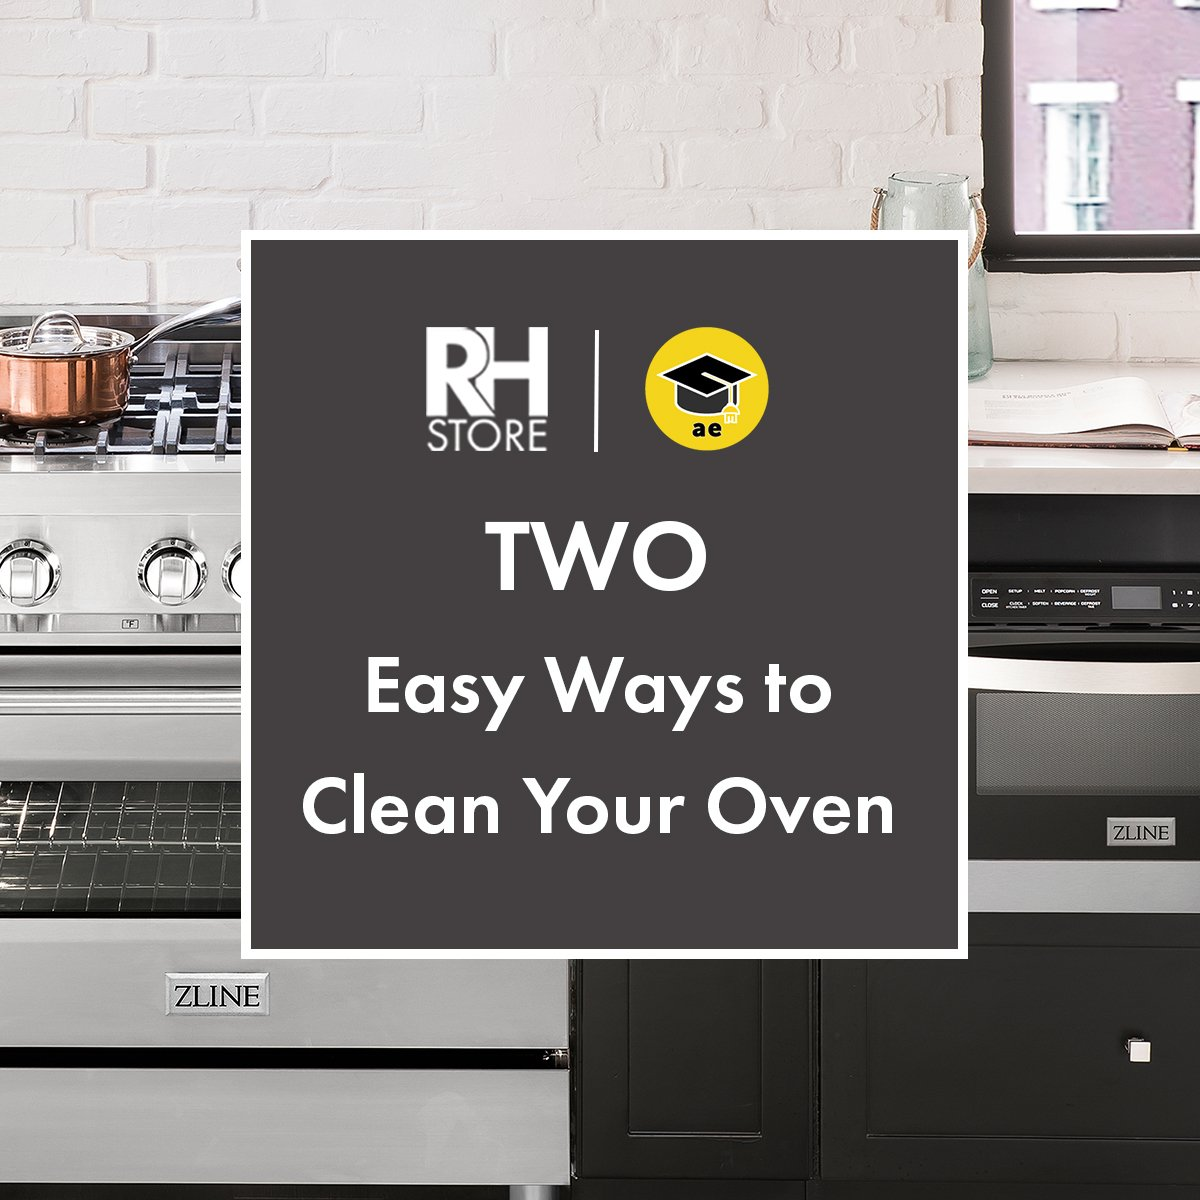 Two Easy Ways to Clean Your Oven - The Range Hood Store & Appliance Educator